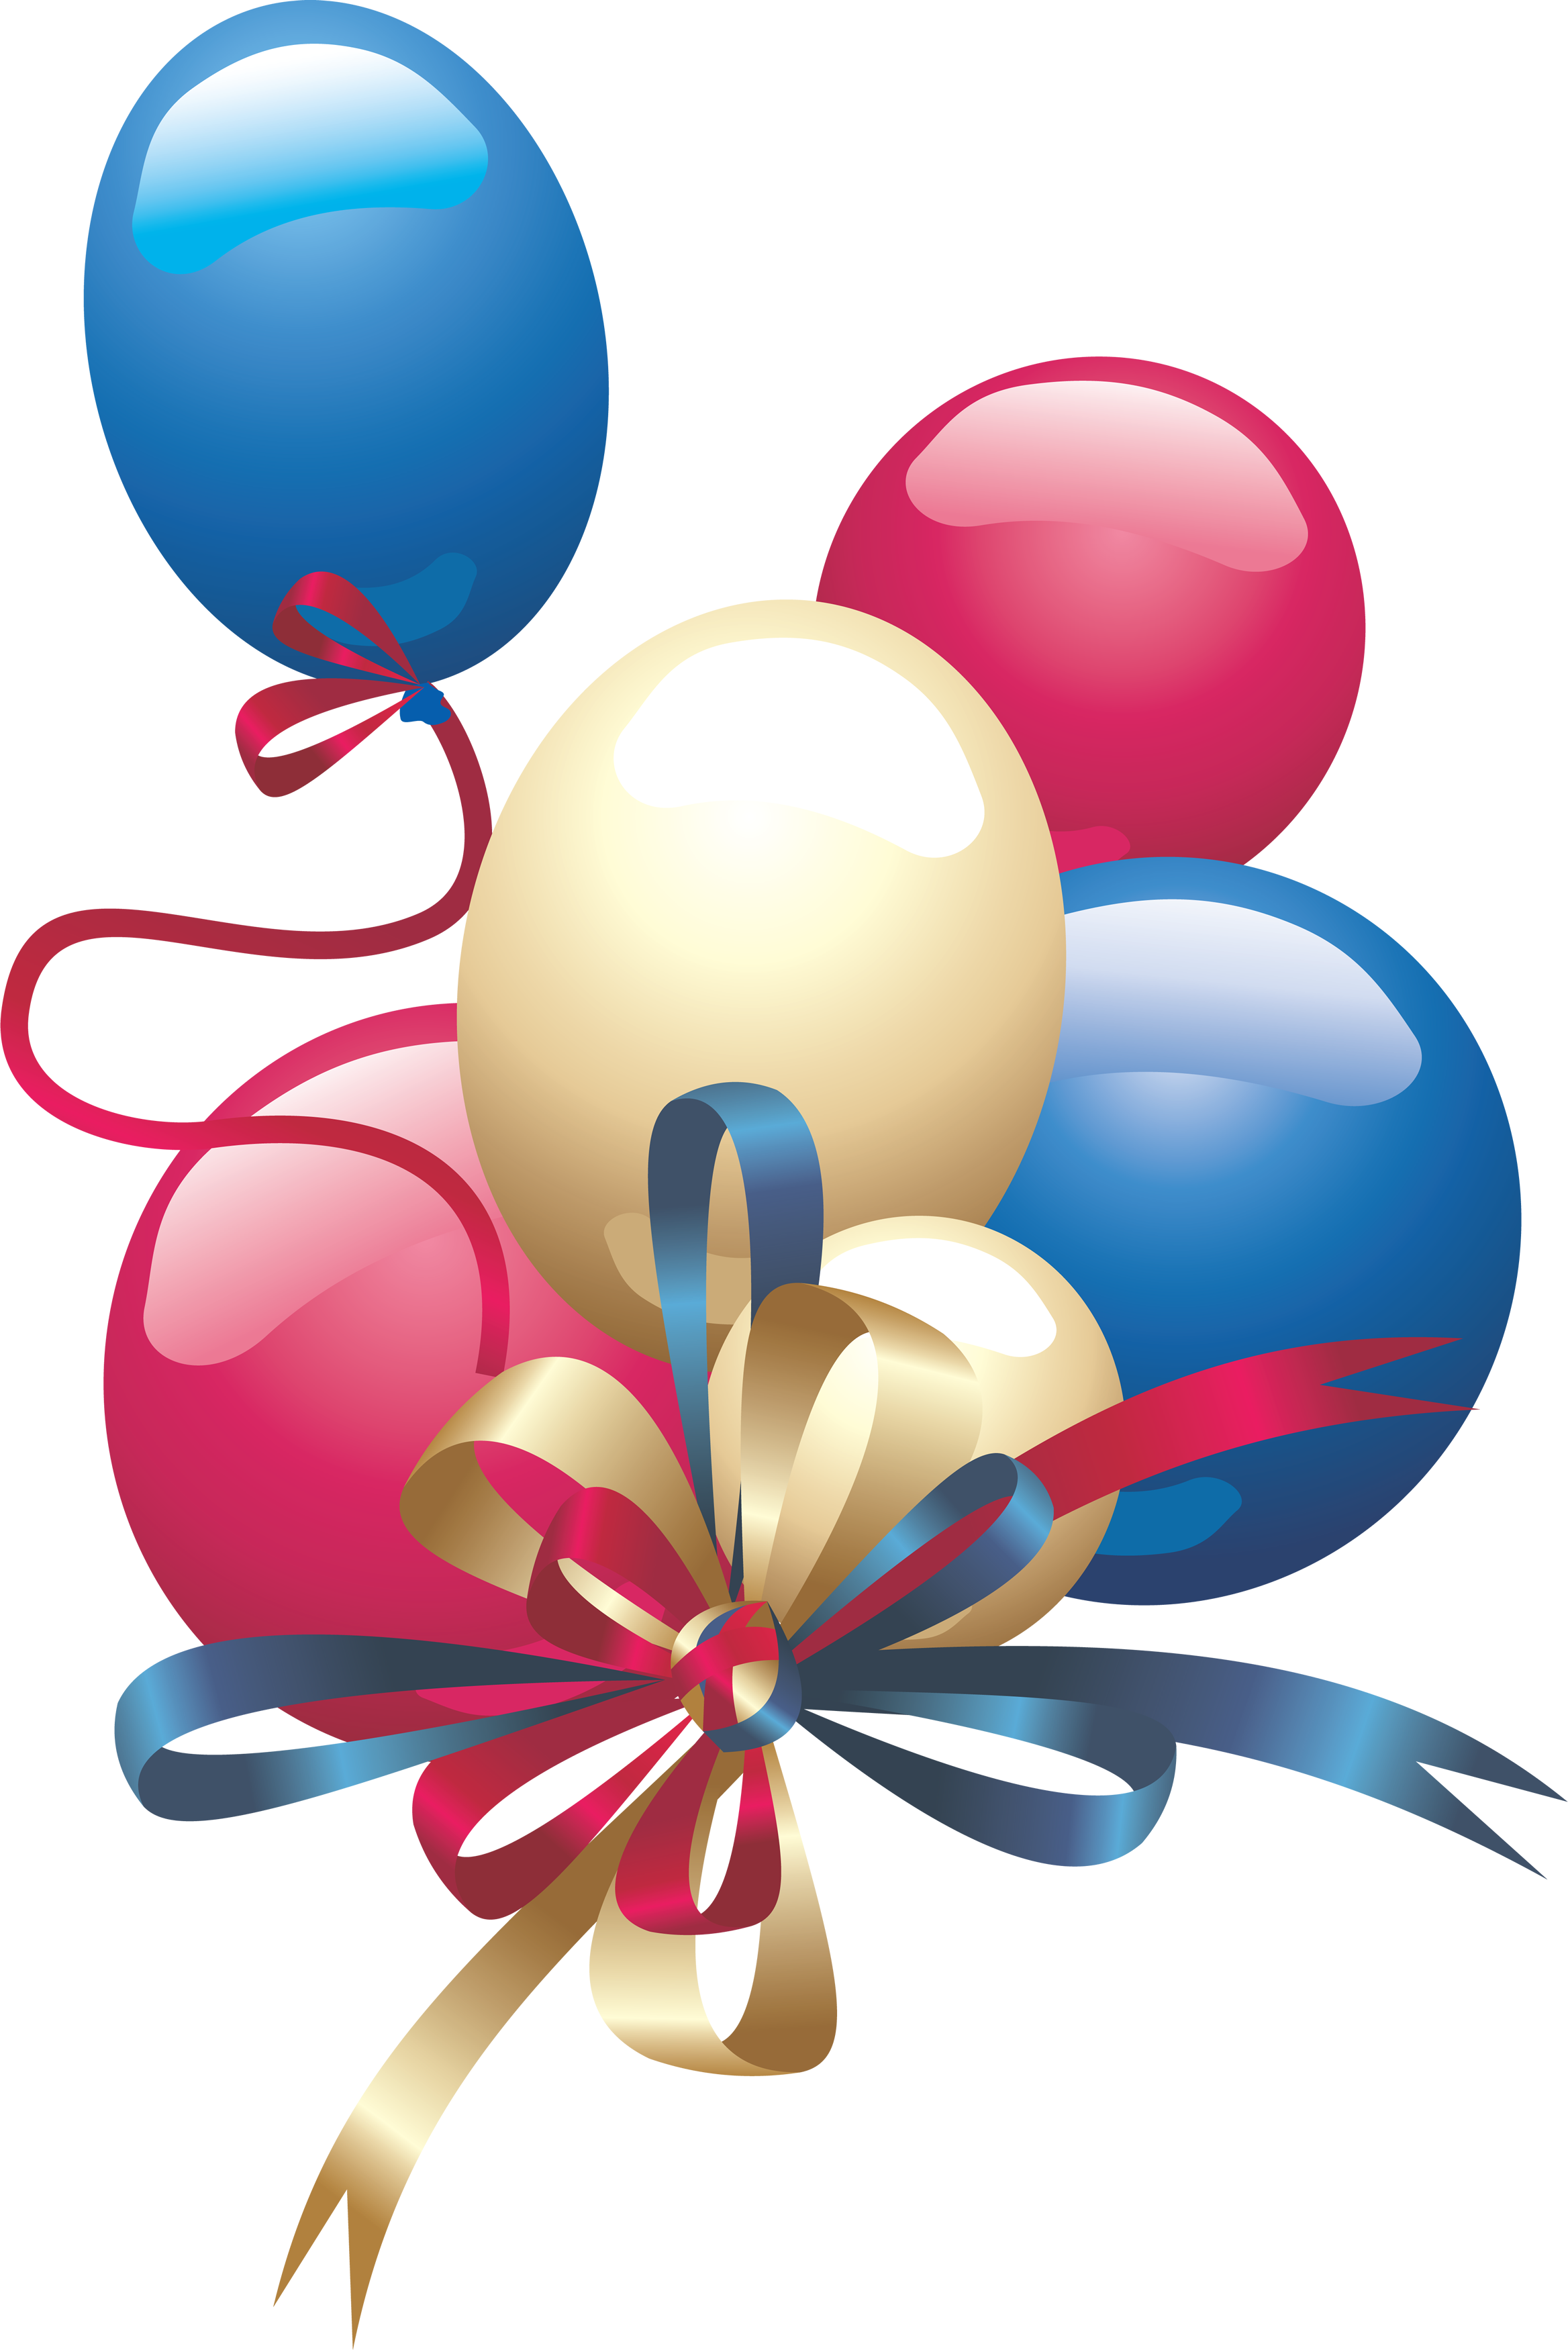 Balloons background png. Balloon images free picture